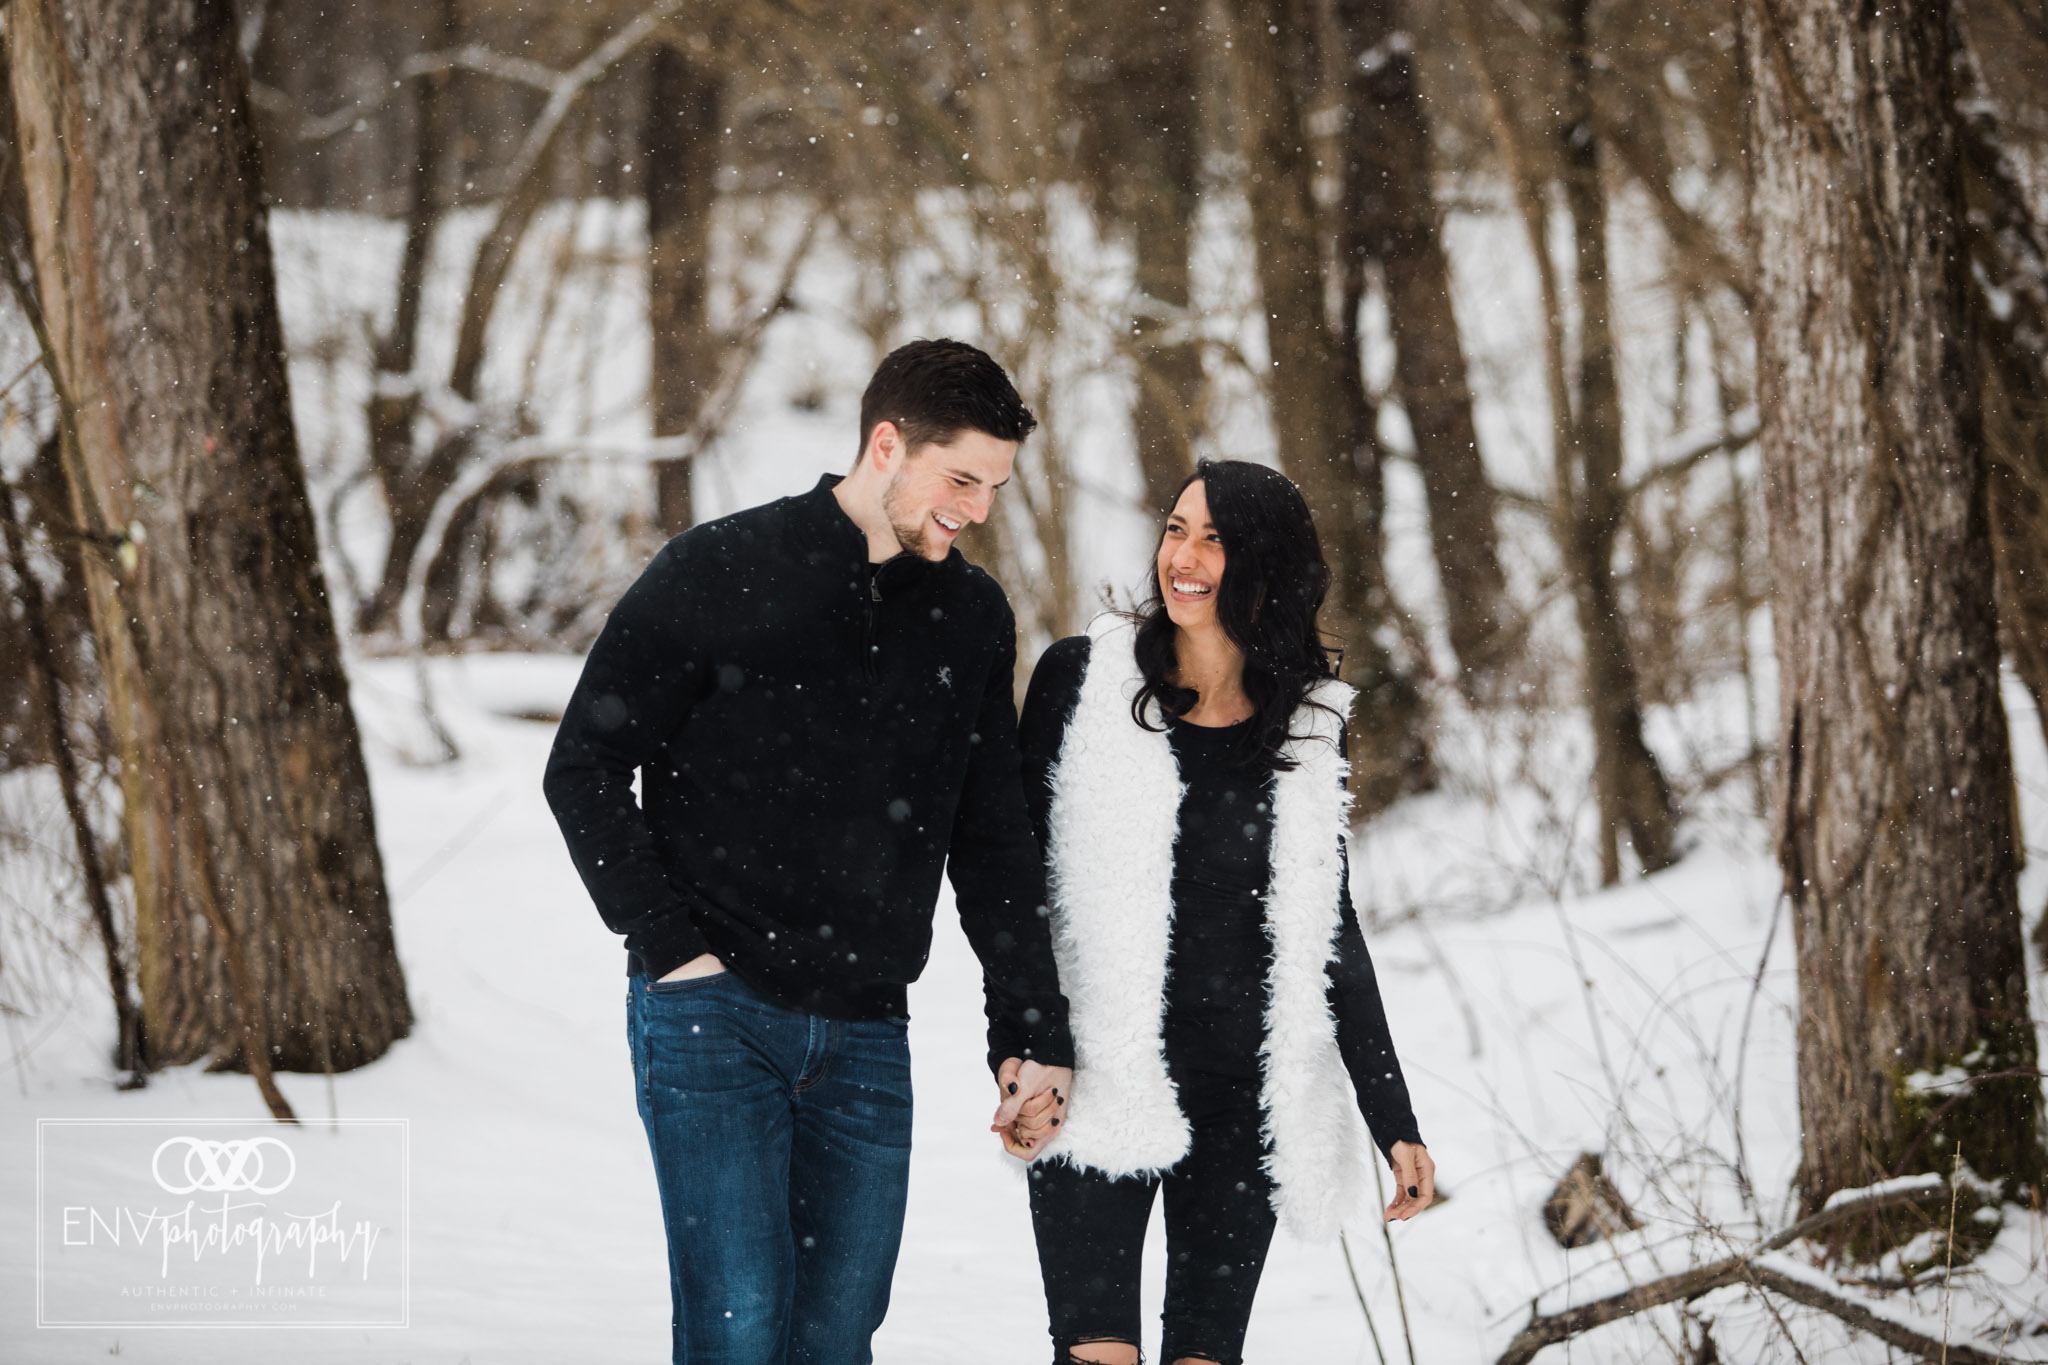 columbus ohio mount vernon ohio winter snowy family engagement photography (20).jpg